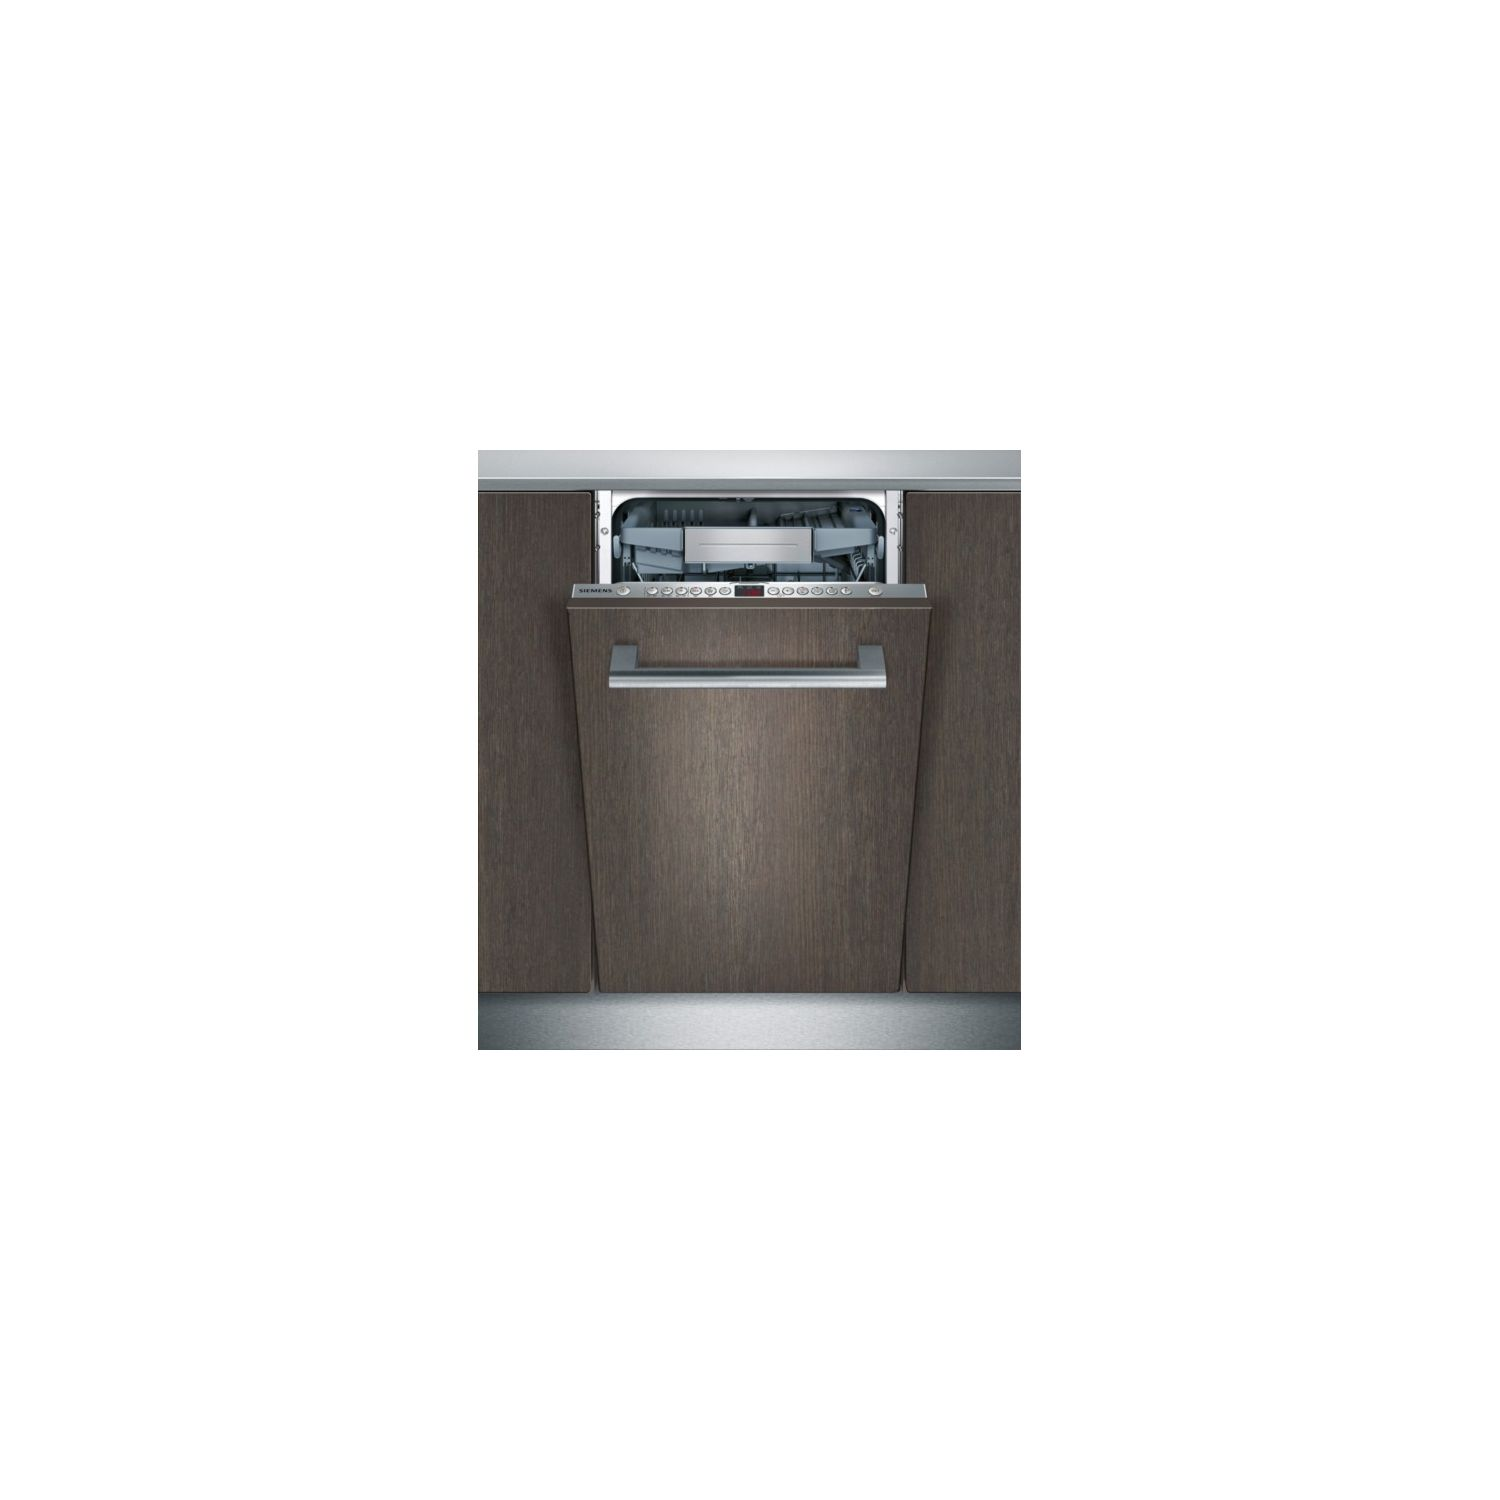 Machine A Laver Integrable Machine A Laver Integrable Awesome Affordable Miele G